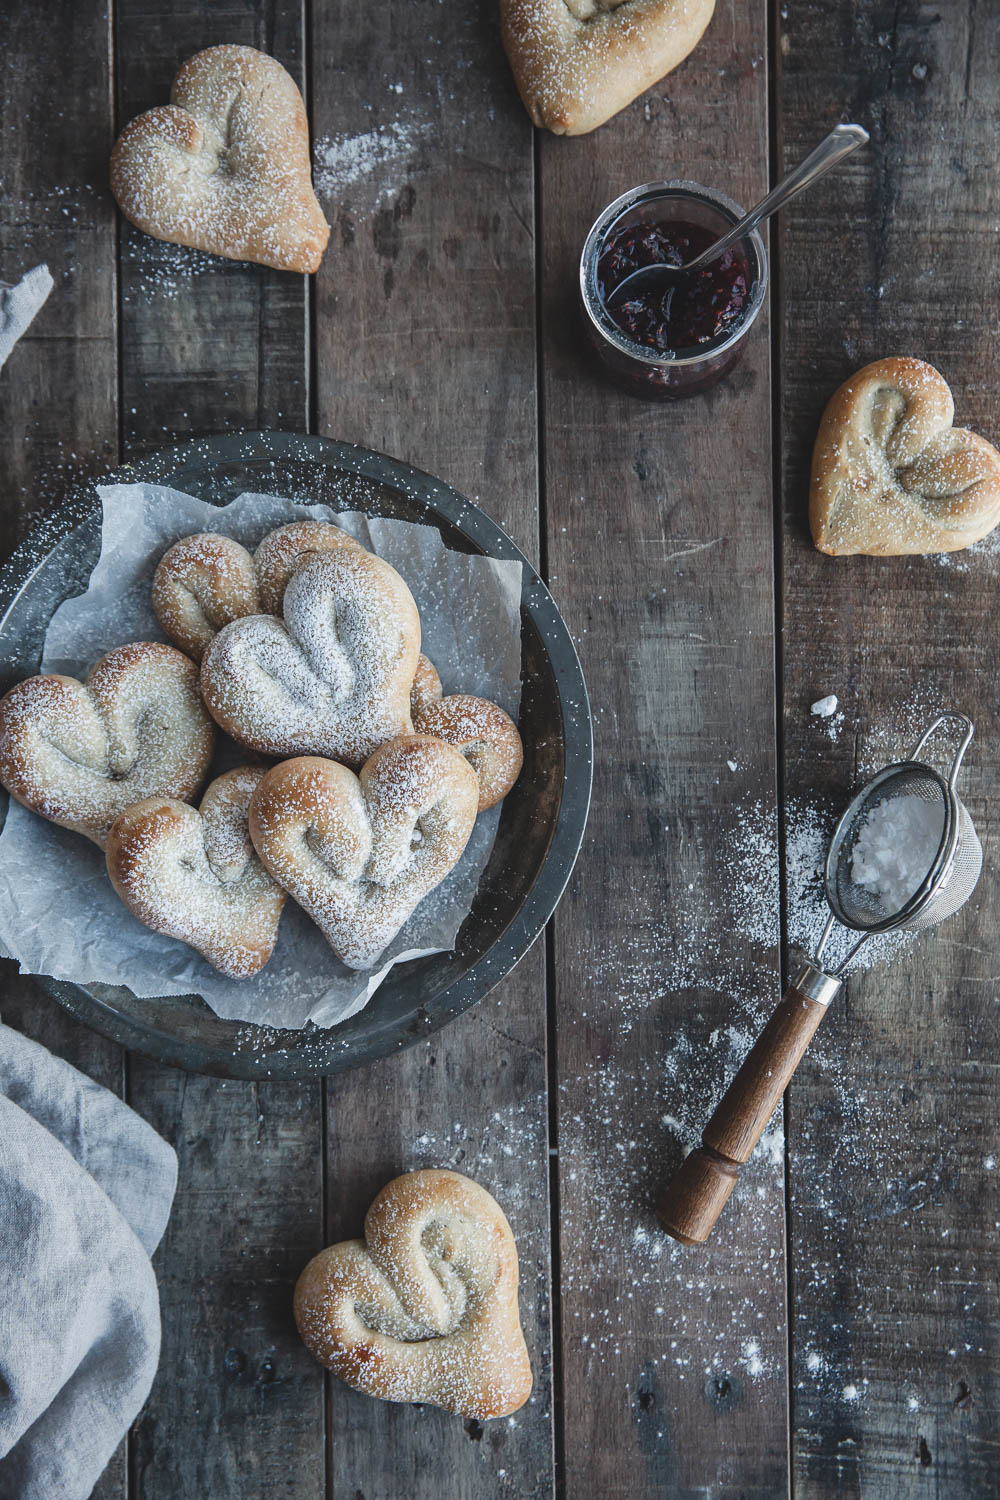 Heart-shaped cardamom buns